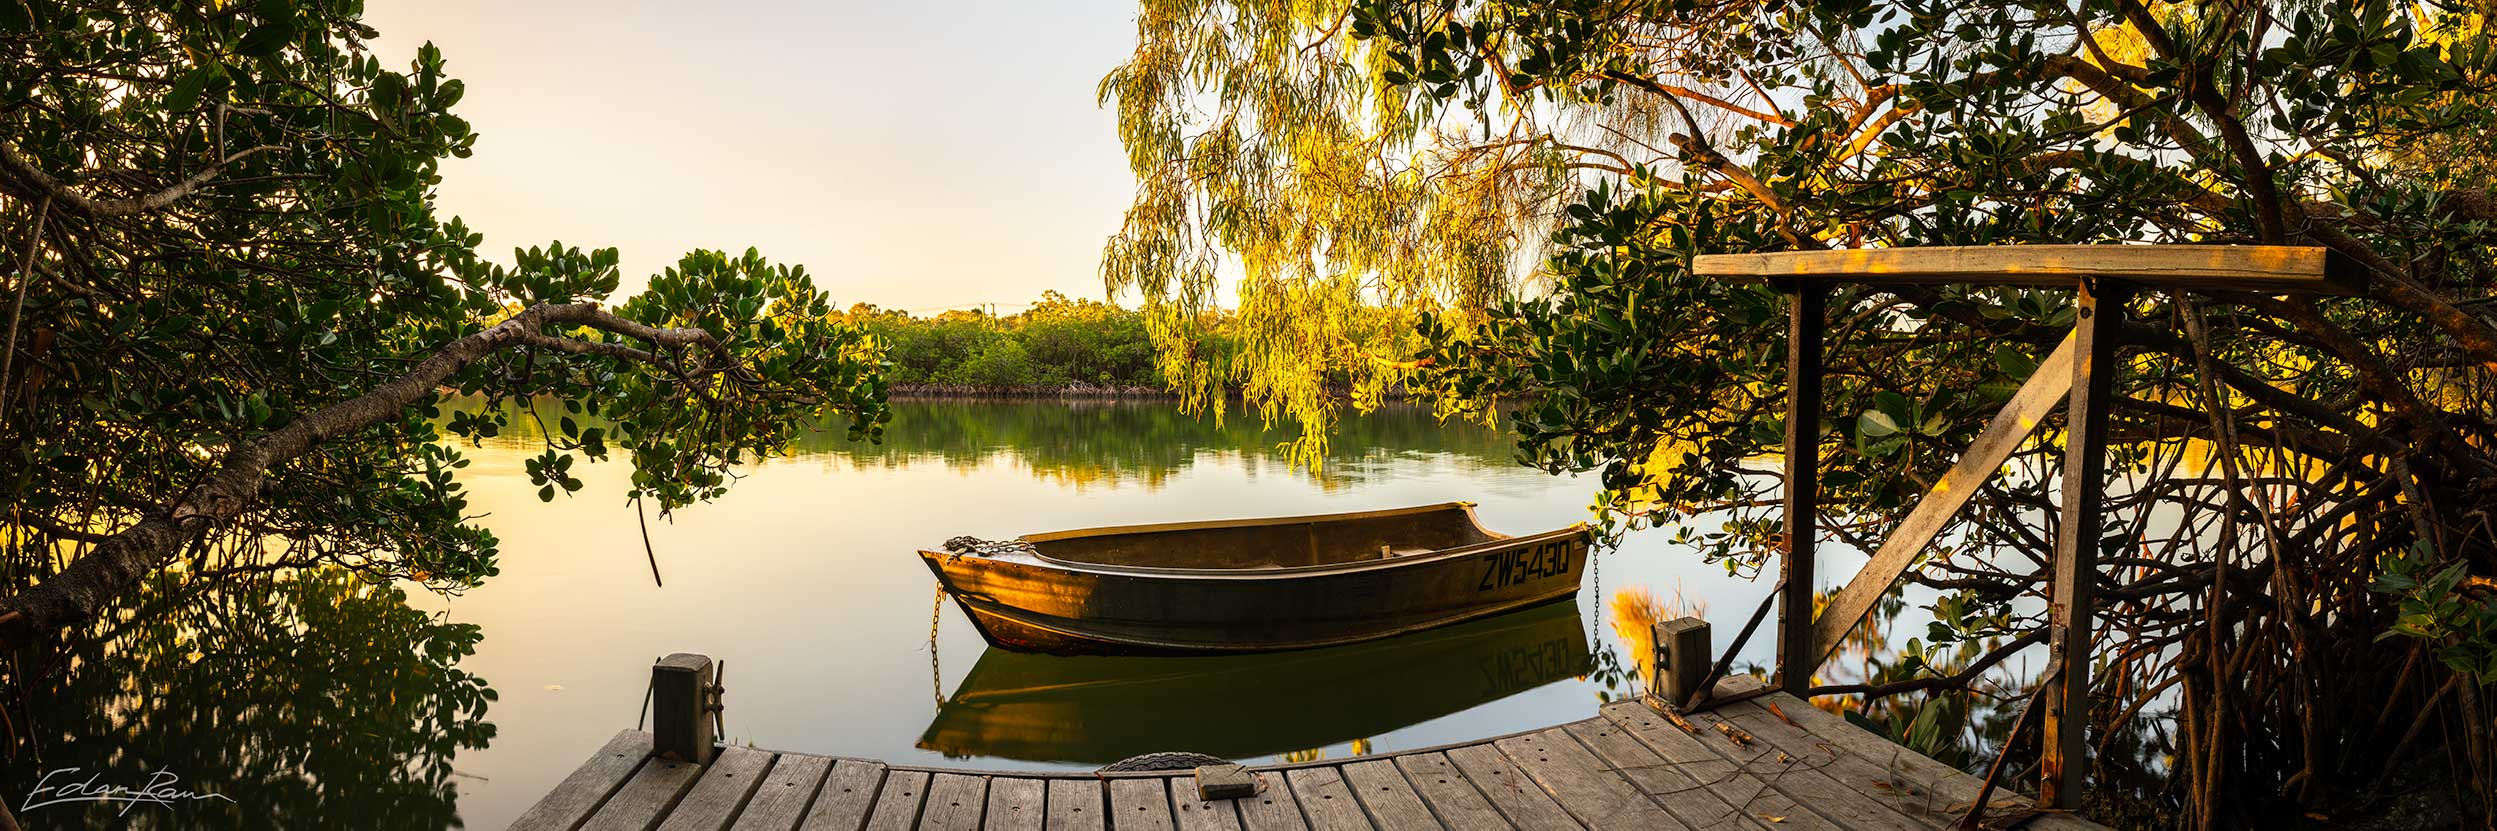 noosa panoramic landscape photography